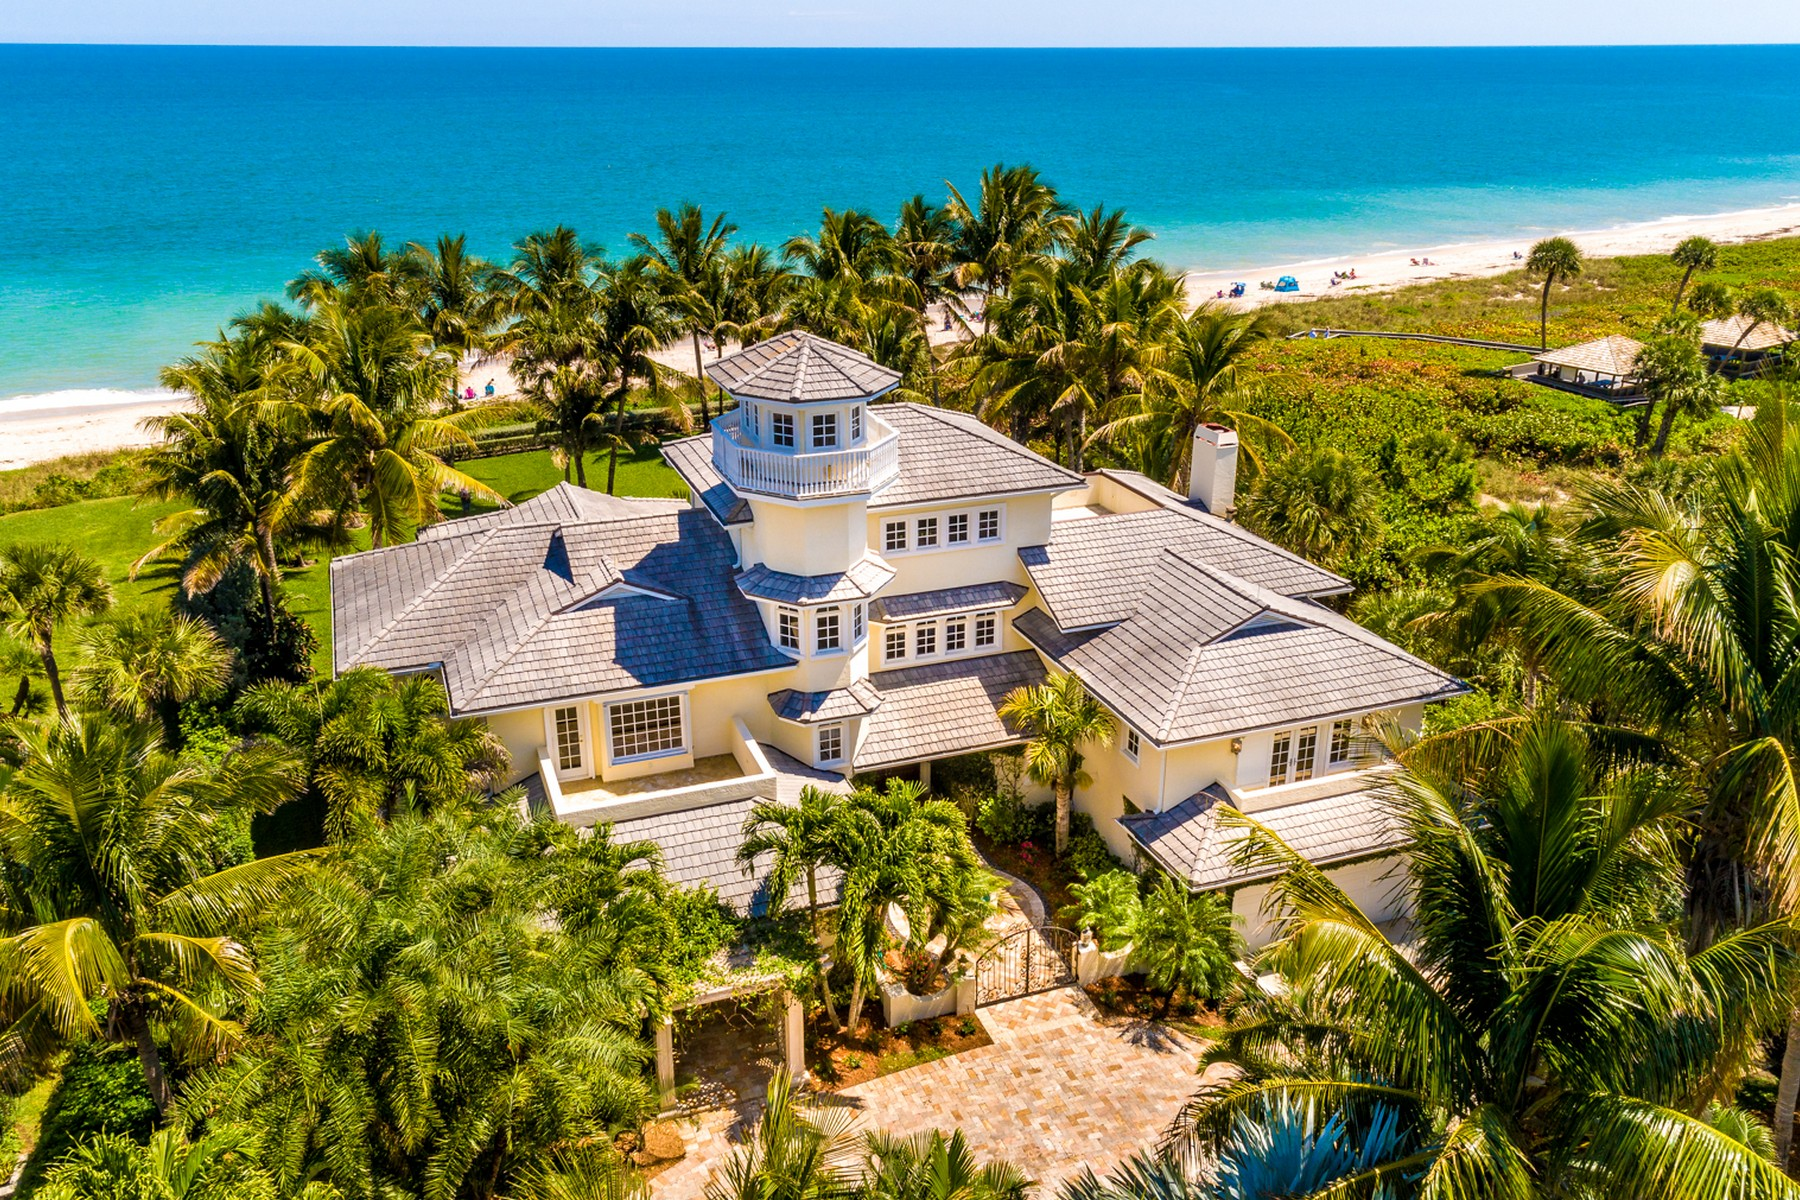 Property 용 매매 에 Magnificent Oceanfront Estate 960 Reef Road Vero Beach, 플로리다 32963 미국